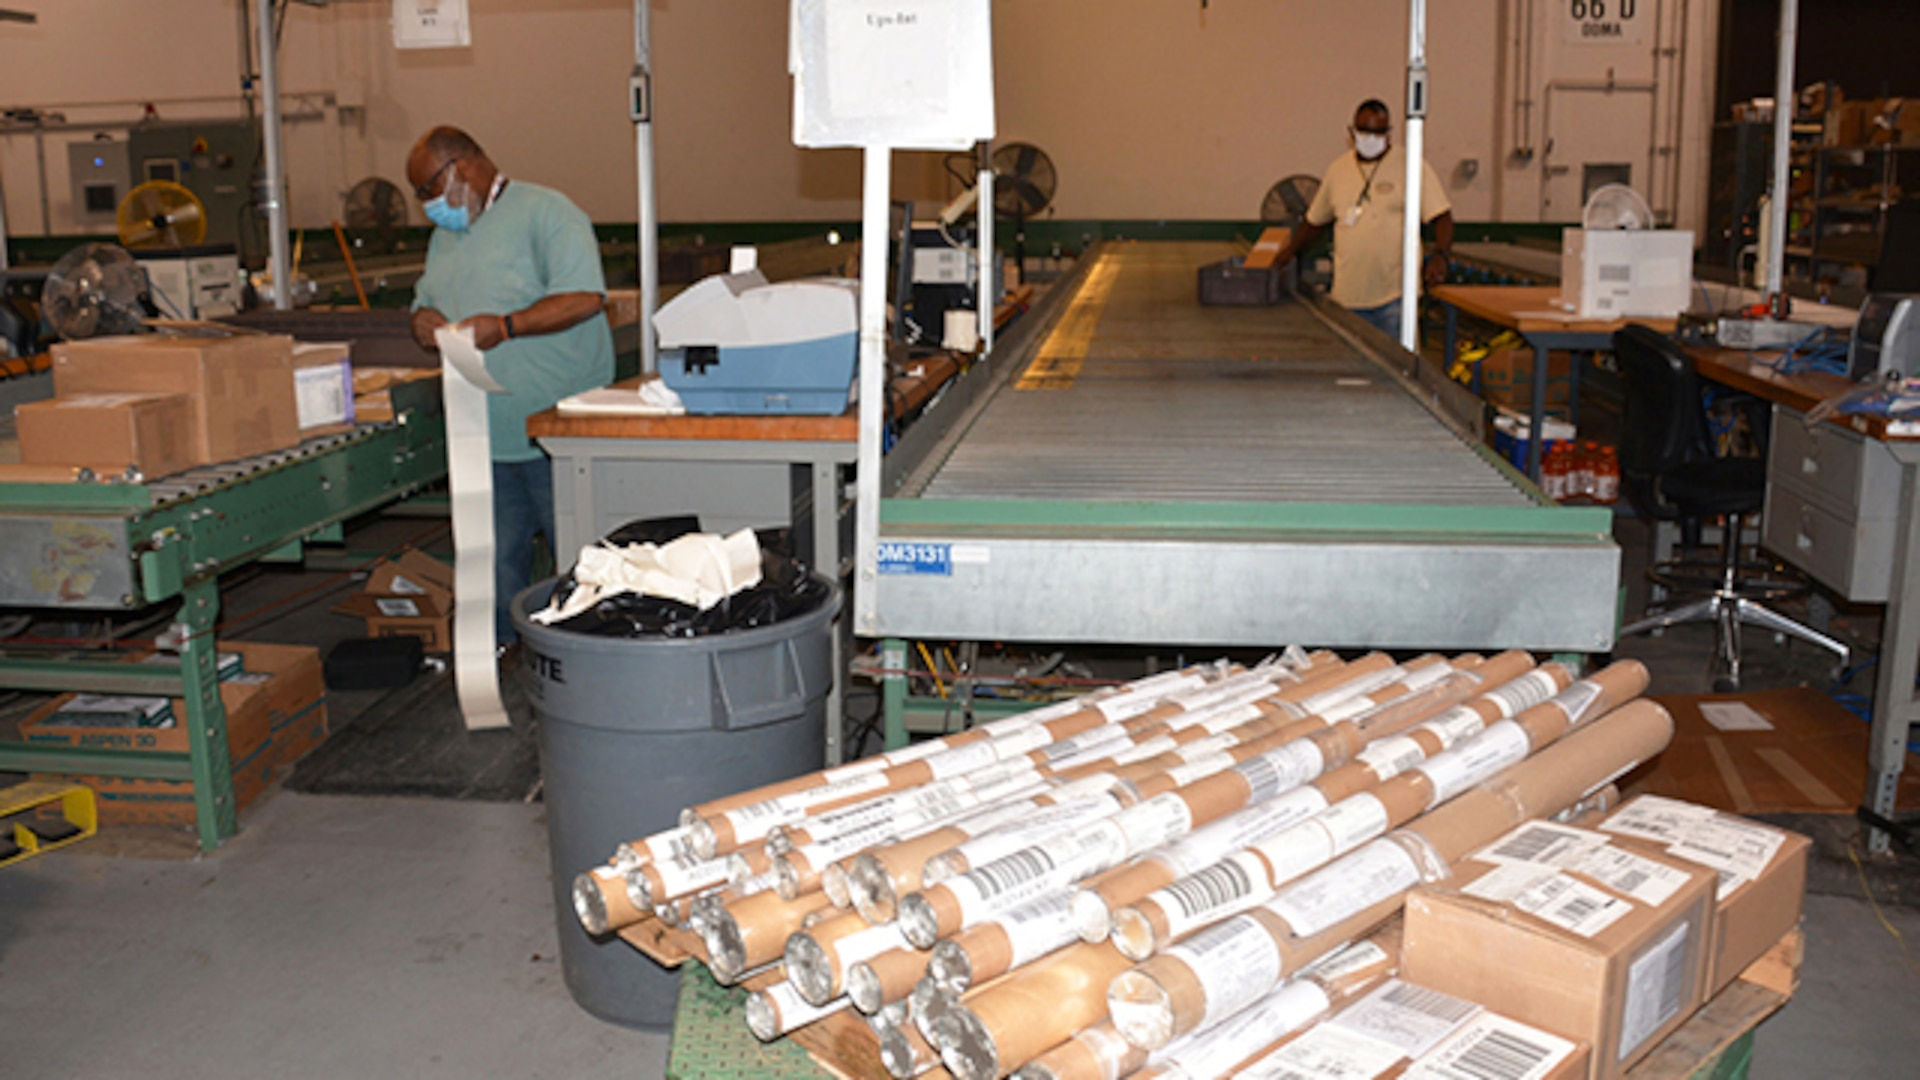 Edward Seaborne, Jr. and Carlton Drummond, both materials handlers from Defense Logistics Agency Distribution, prepare packages to mail mapping products to customers